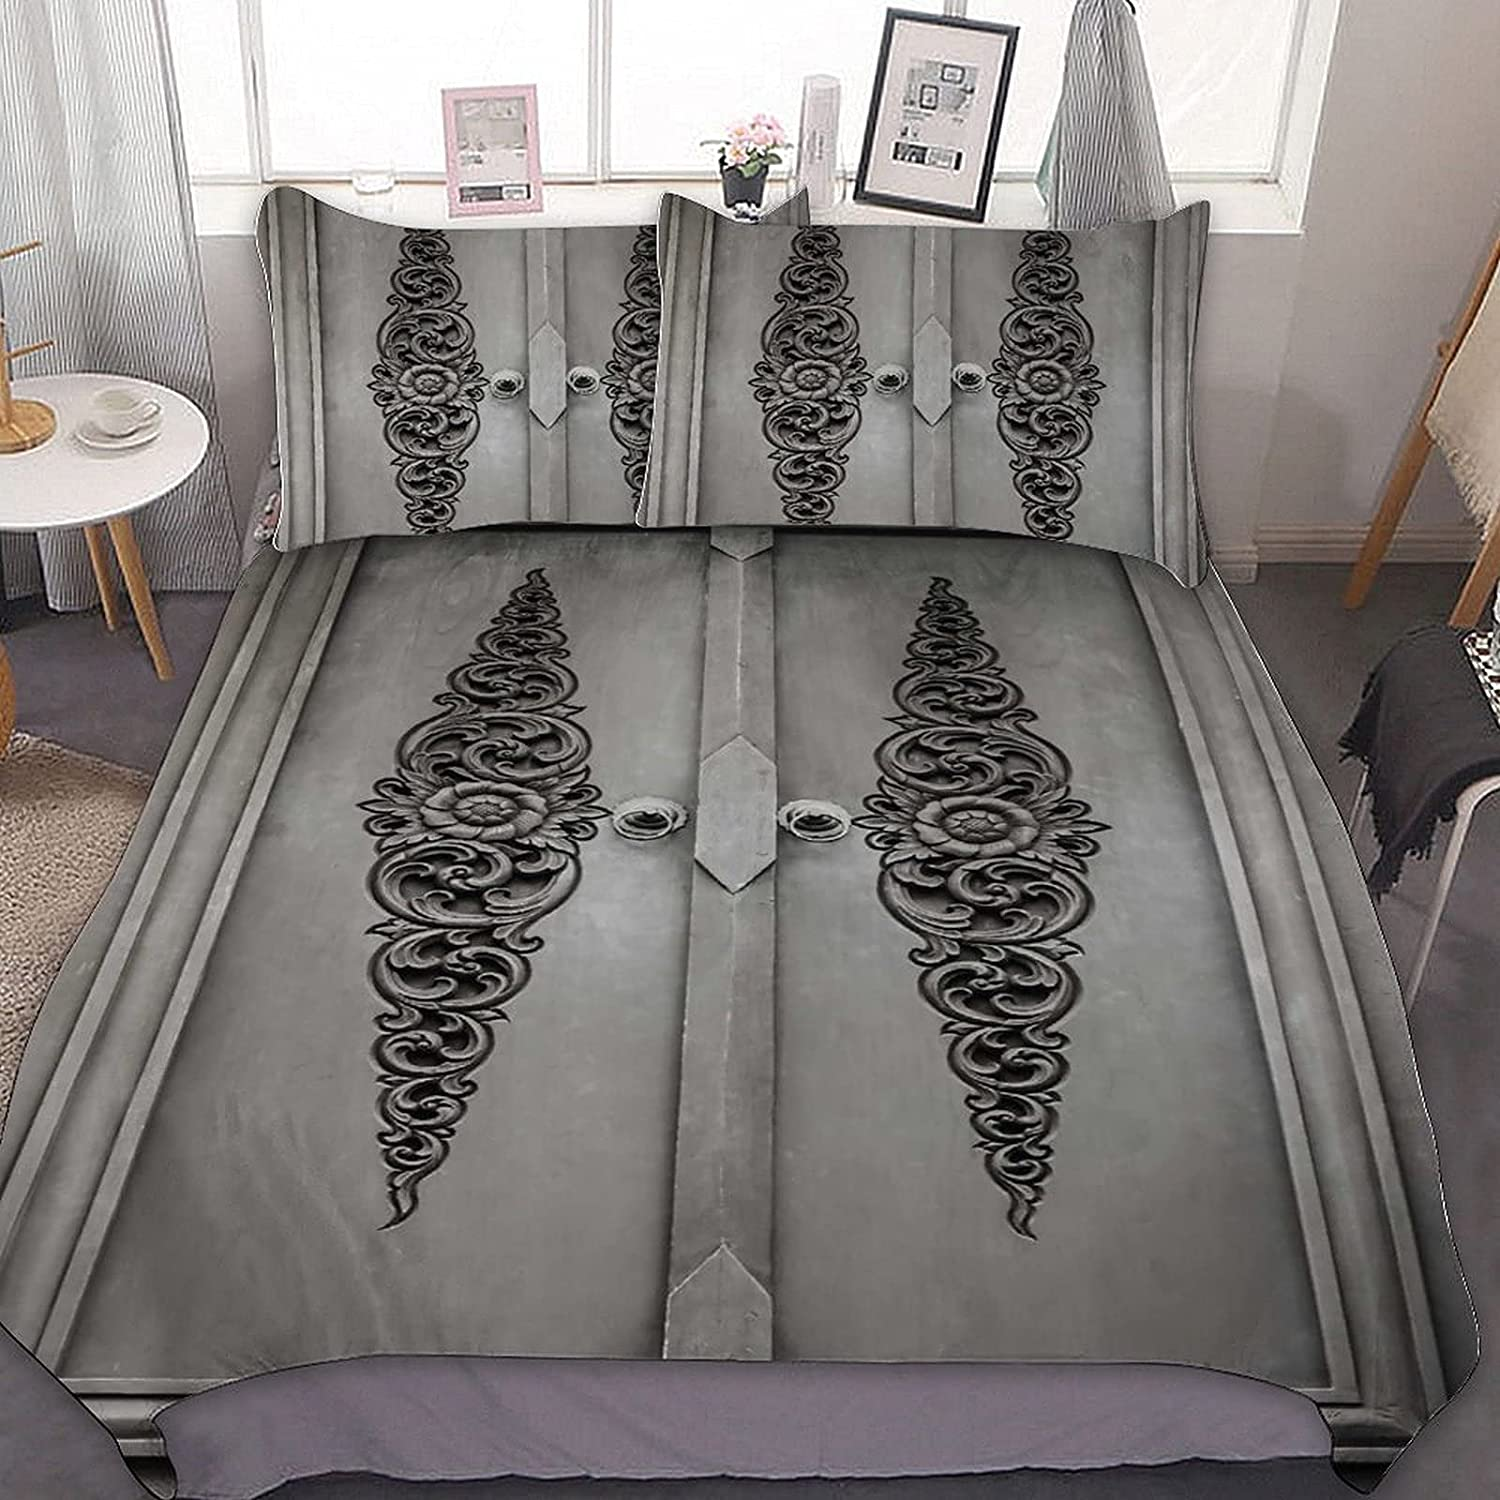 Antique Doors Cheap sale The Three-Piece Super-Fiber Bed is and Soft Light Omaha Mall